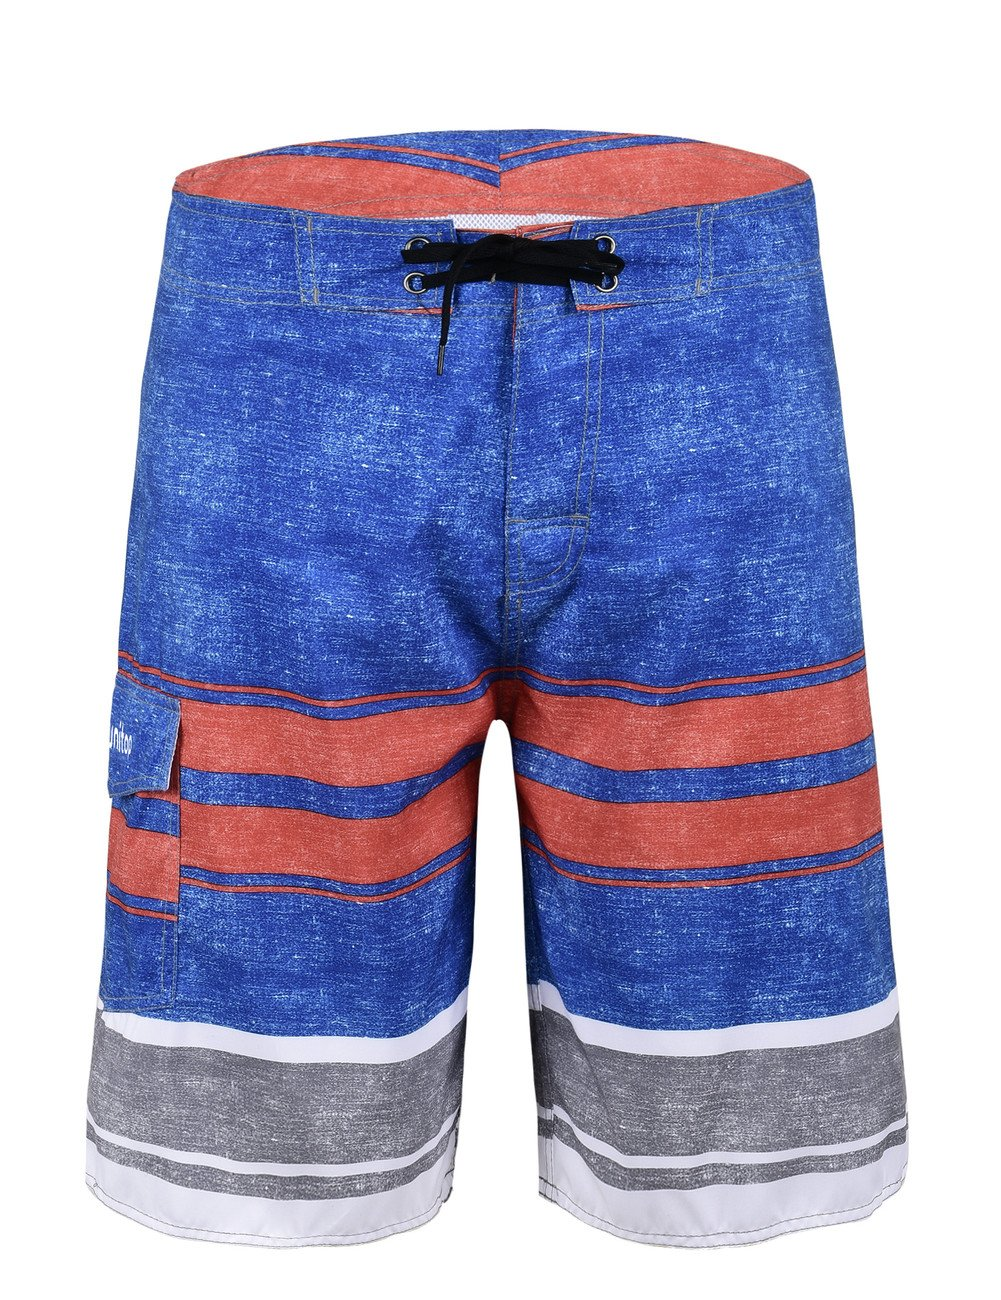 Unitop Men's Summer Holiday Stripped Quick Dry Swim Trunks Blue and Red 32